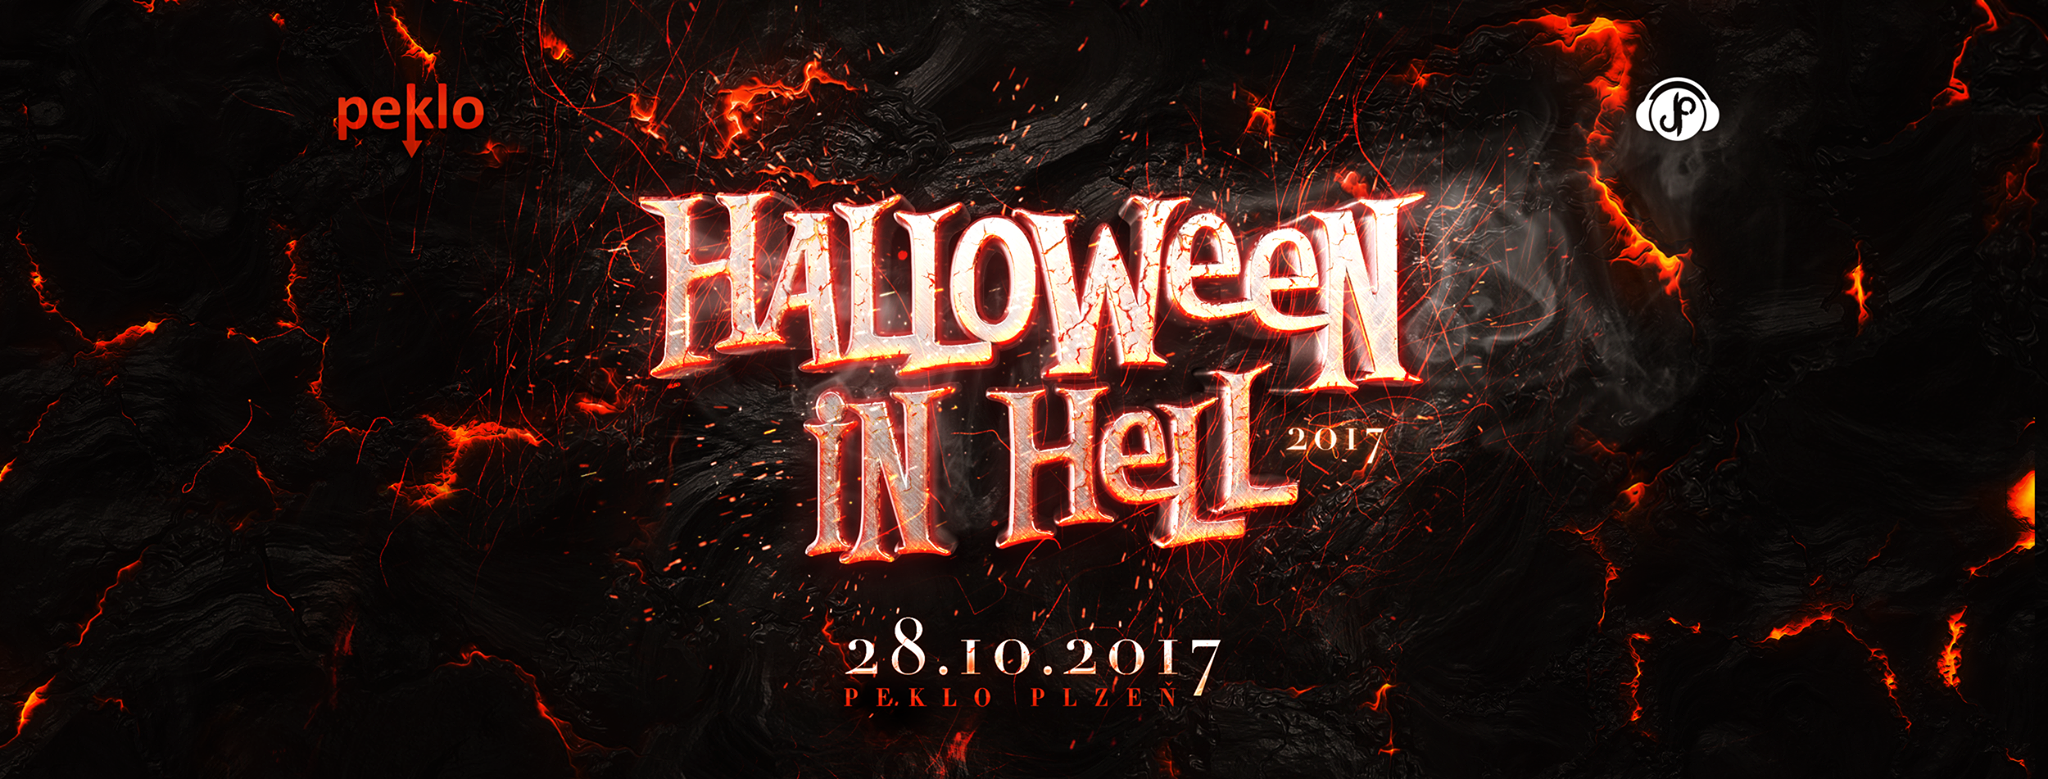 Halloween in Hell 2017